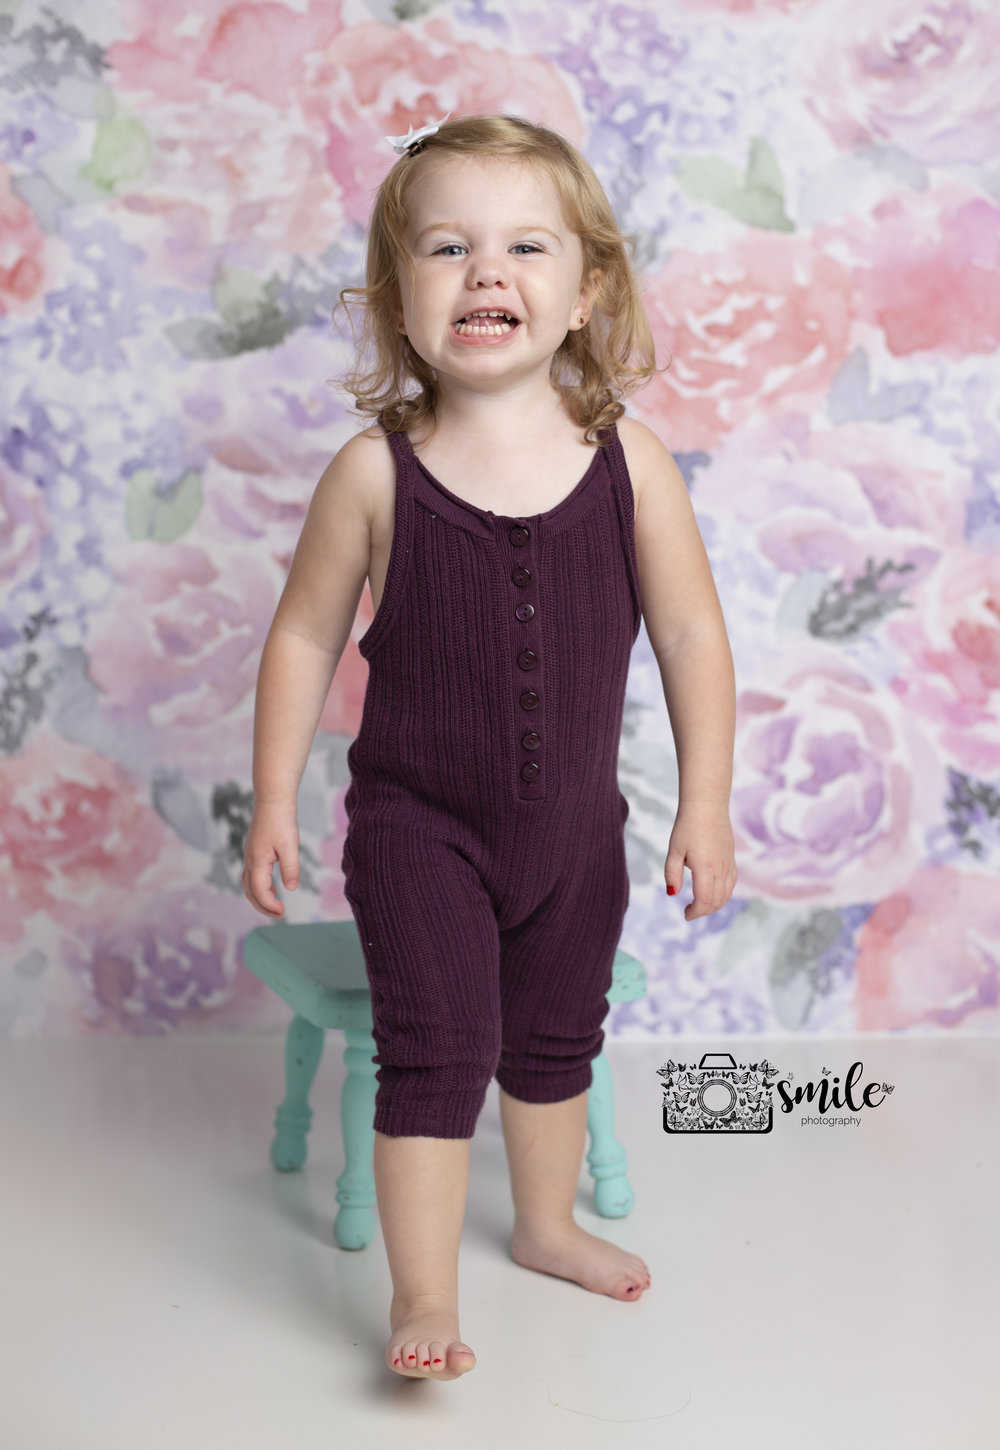 Ocean County Photographer Jersey Shore Child Photography